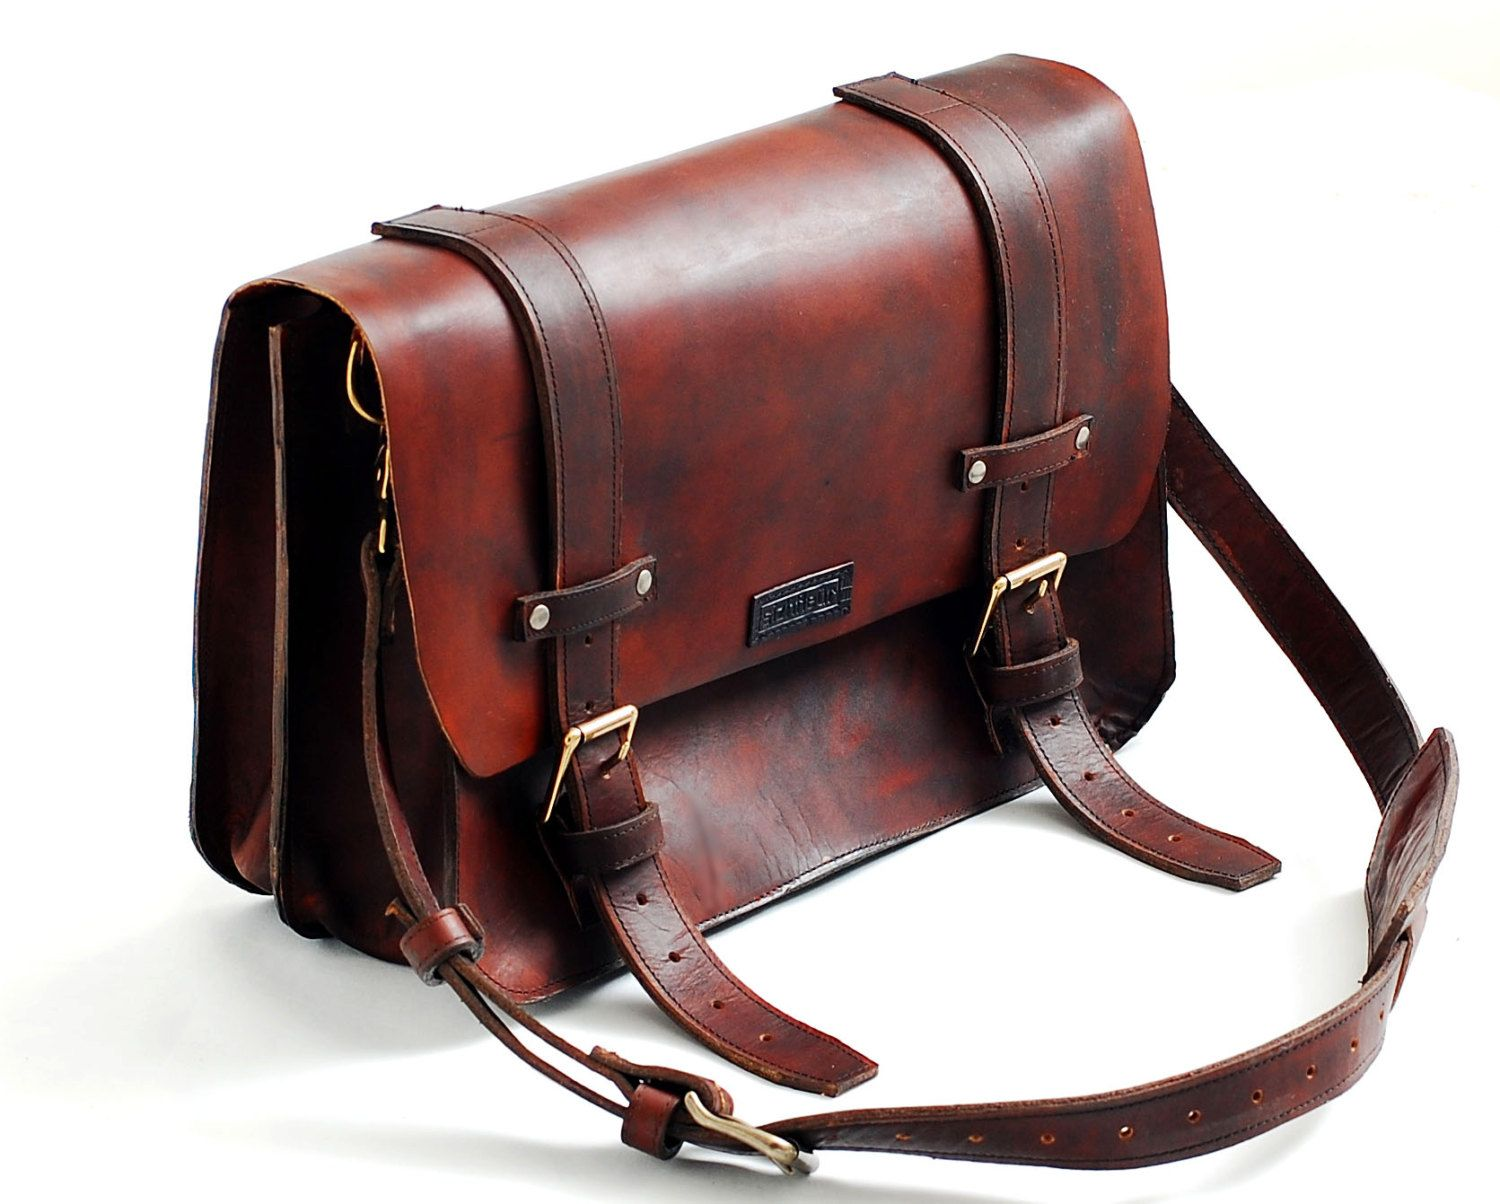 Leather Messenger Bag or leather lawyers bag, leather satchel for ...